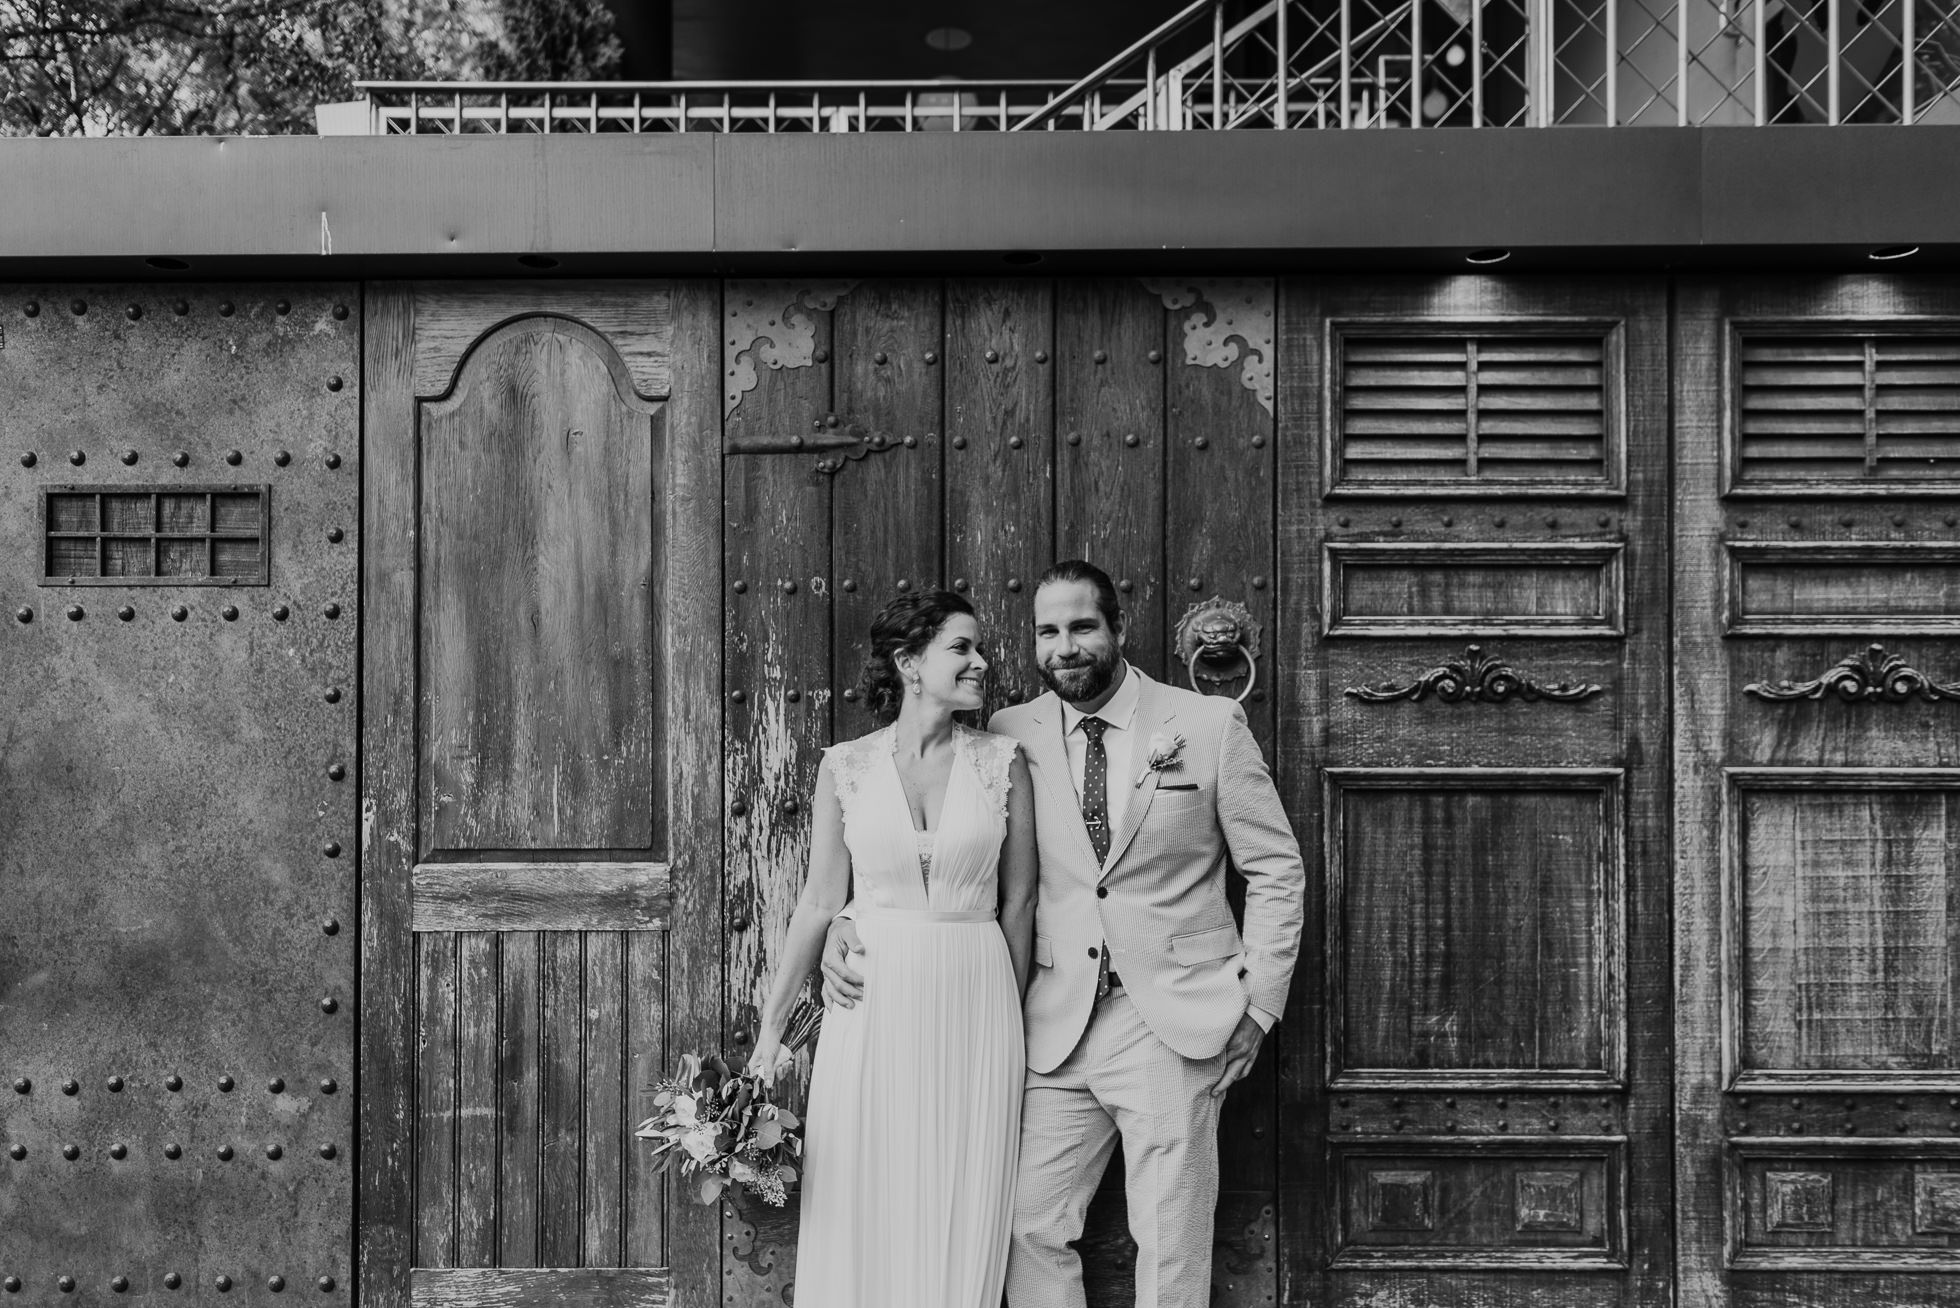 Meatpacking District wedding